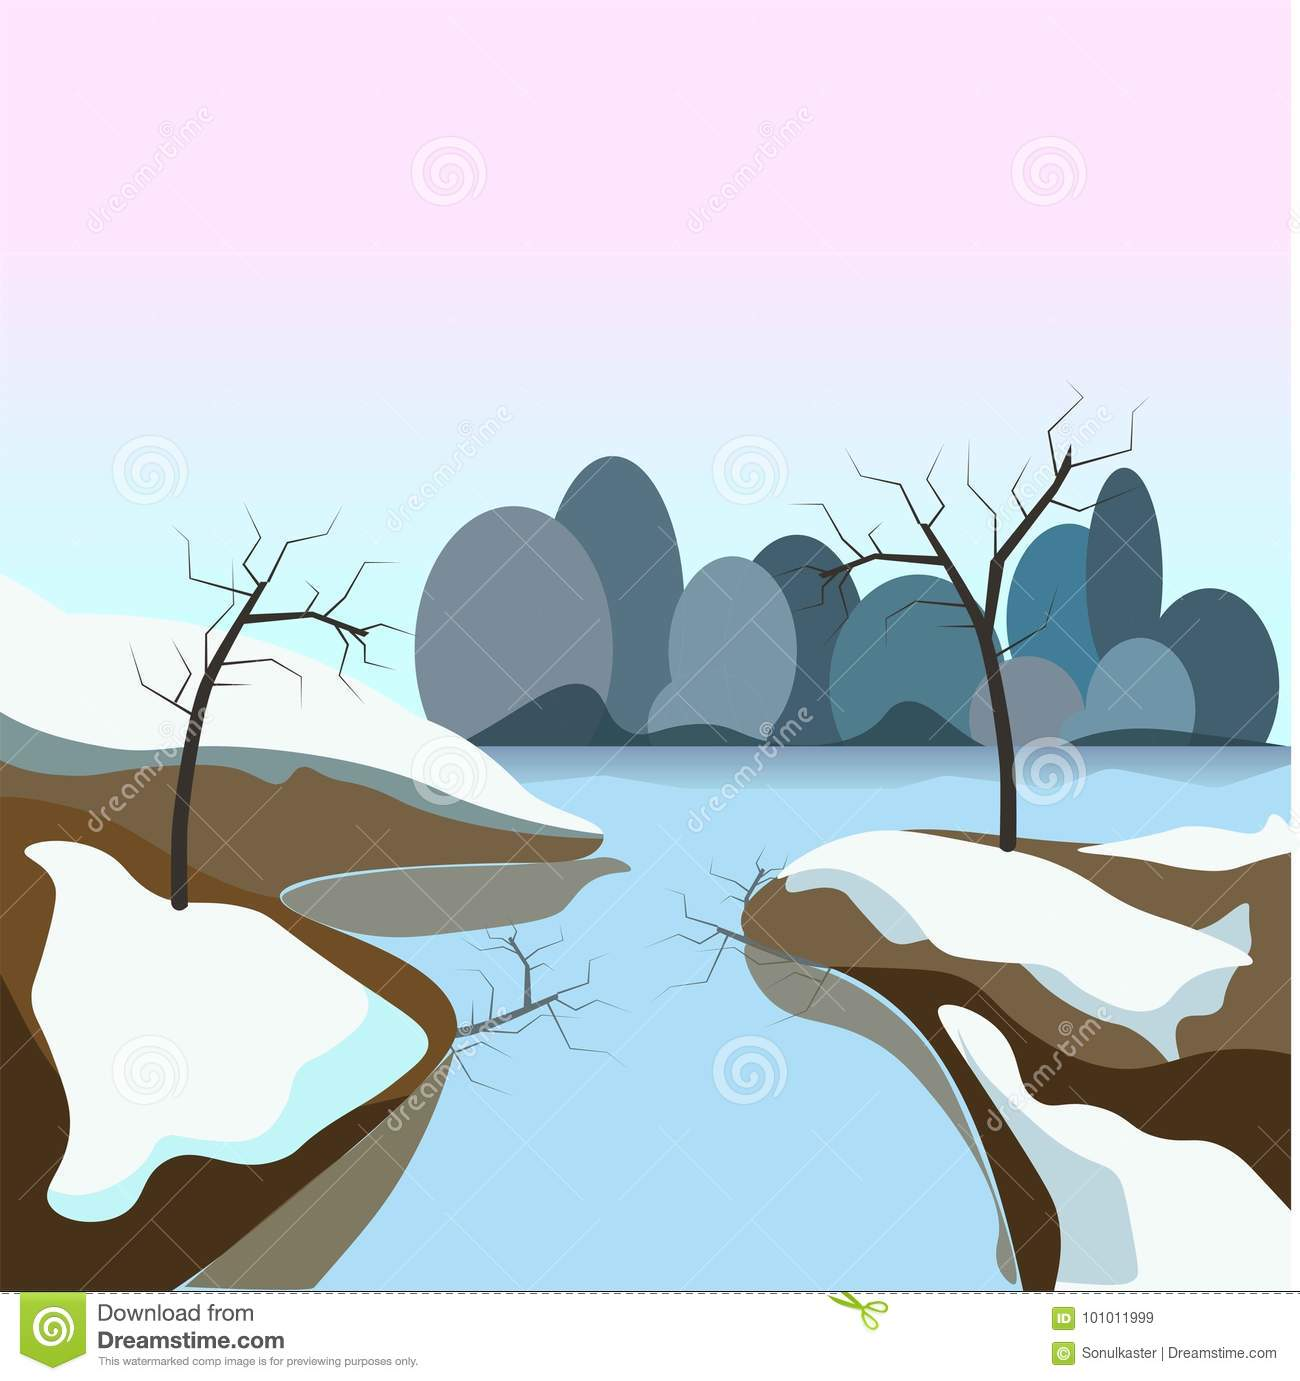 Winter Landscape With Frozen Water And Snow On Ground Transparent